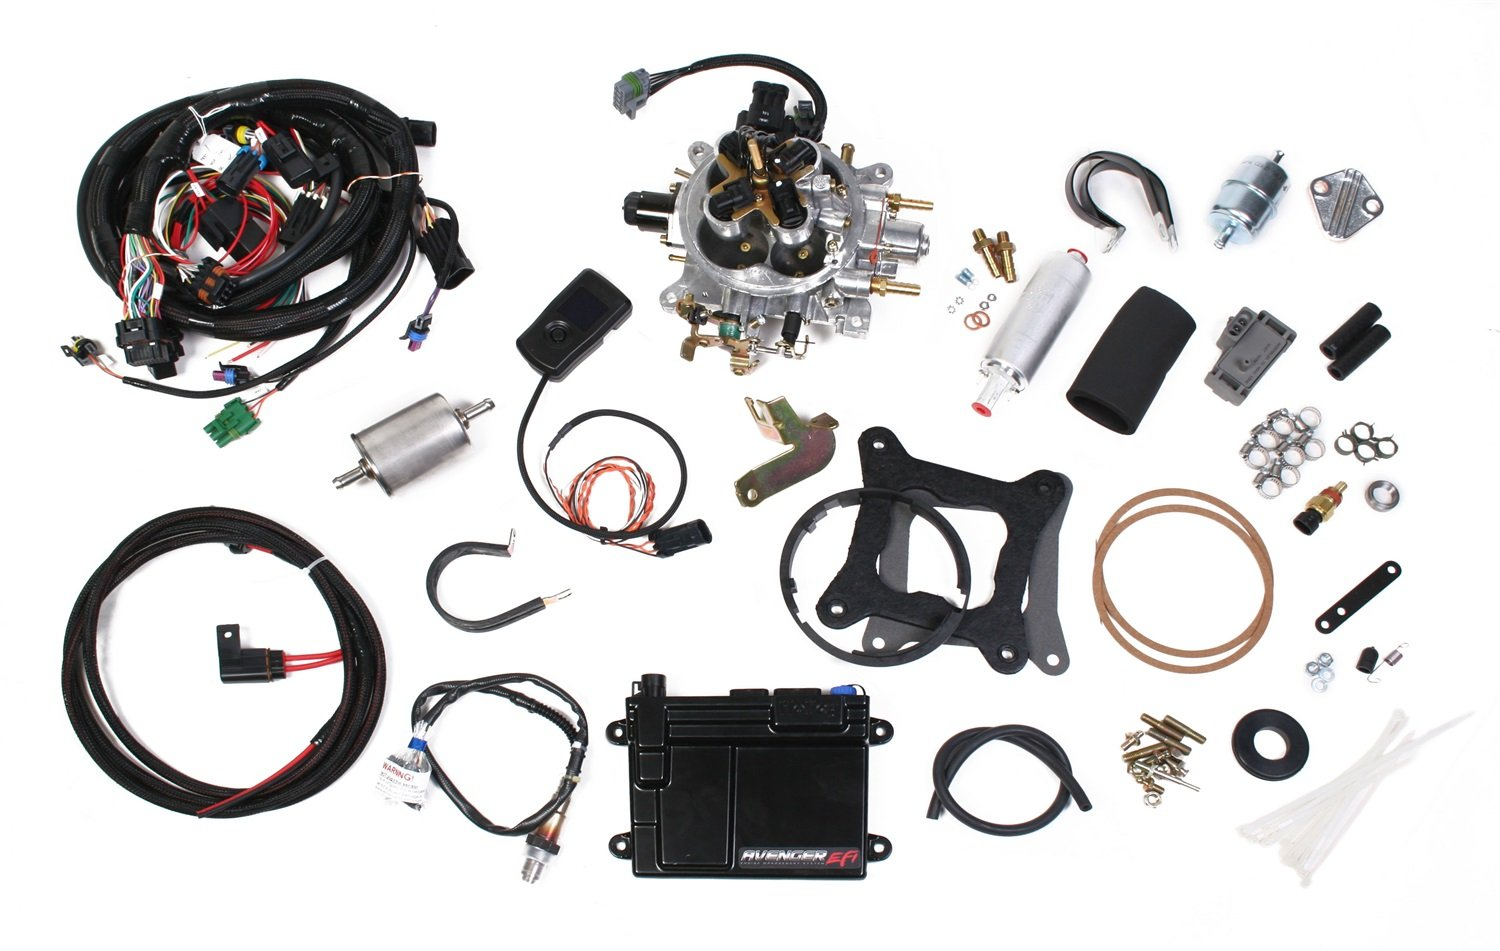 Holley 550-400 Avenger EFI Throttle Body Fuel Injection System